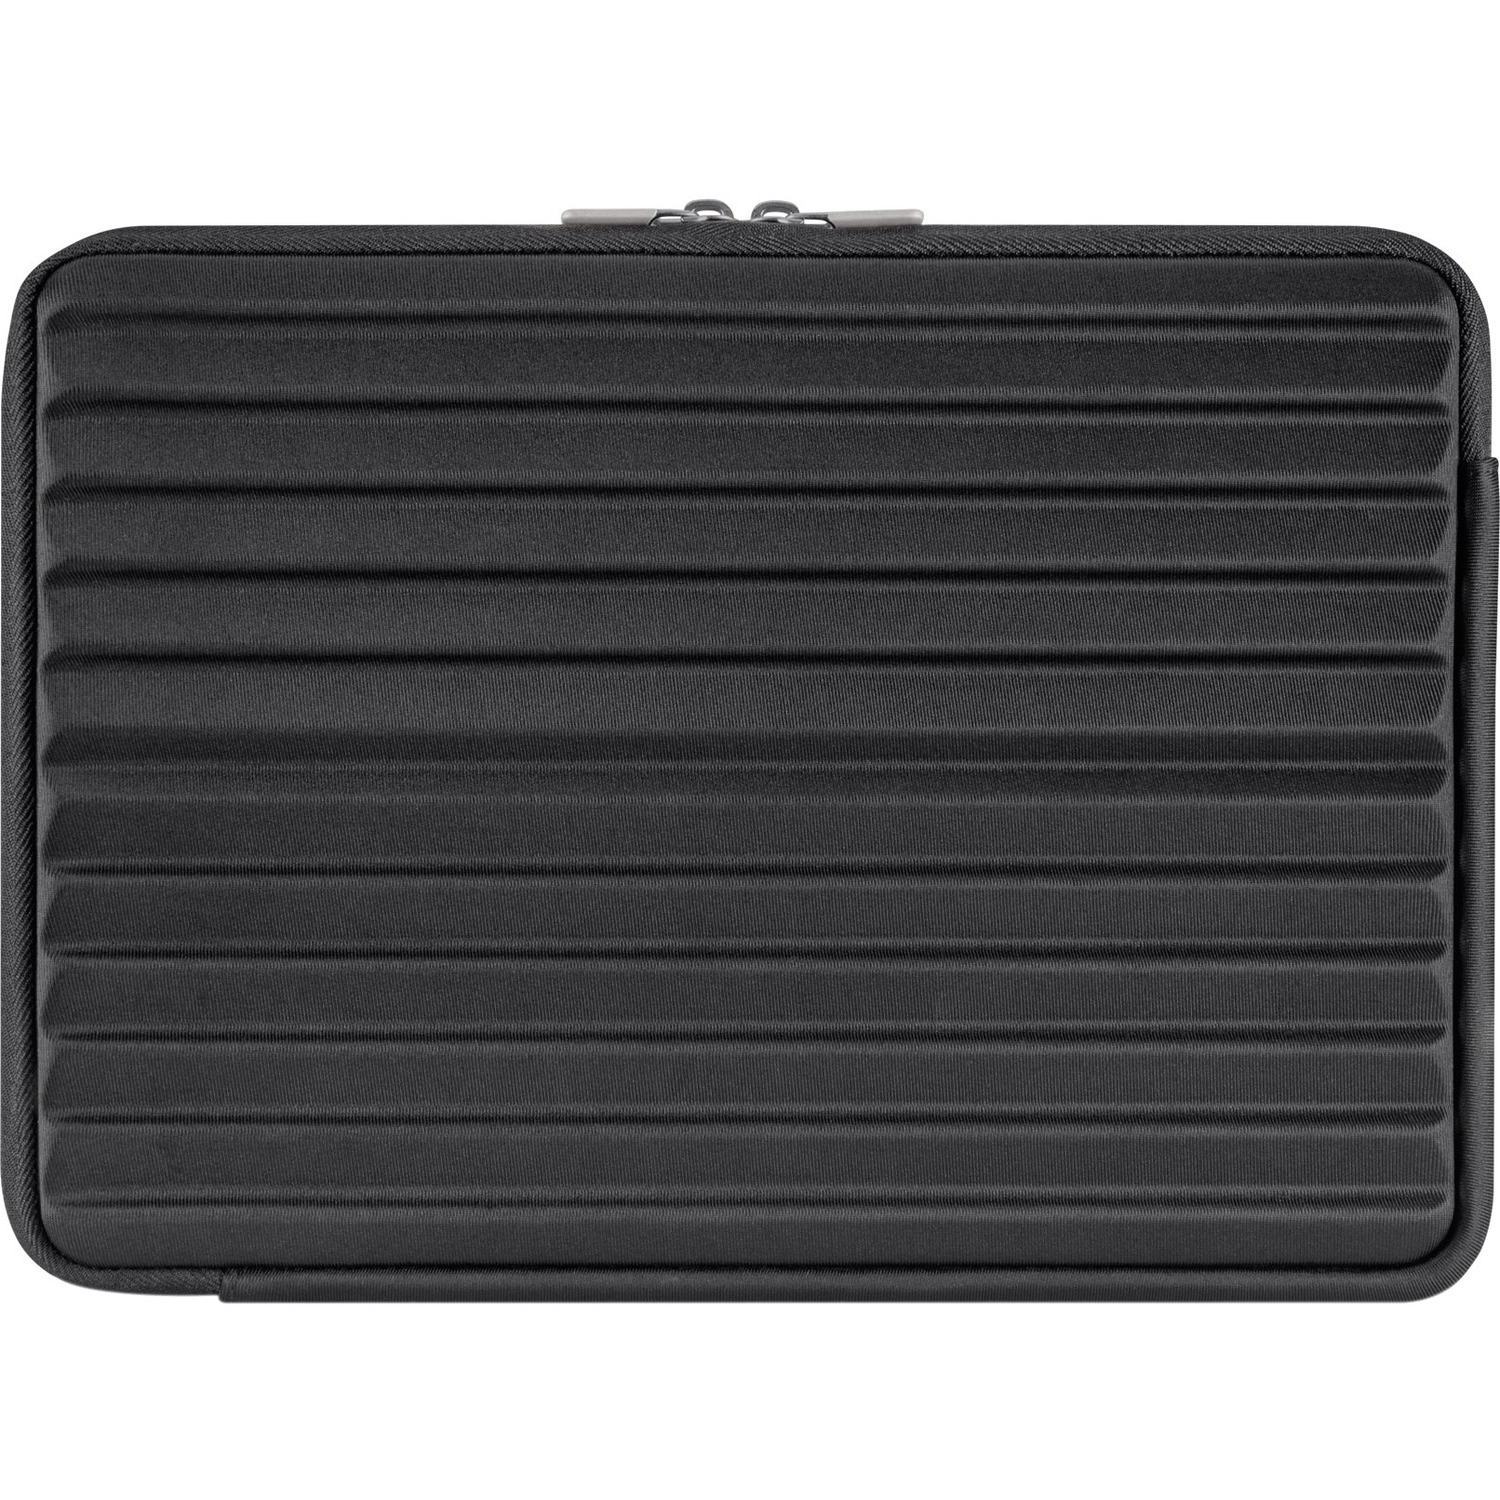 Belkin Carrying Case Sleeve for 30.5 cm 12inch Tablet - Black - Neoprene